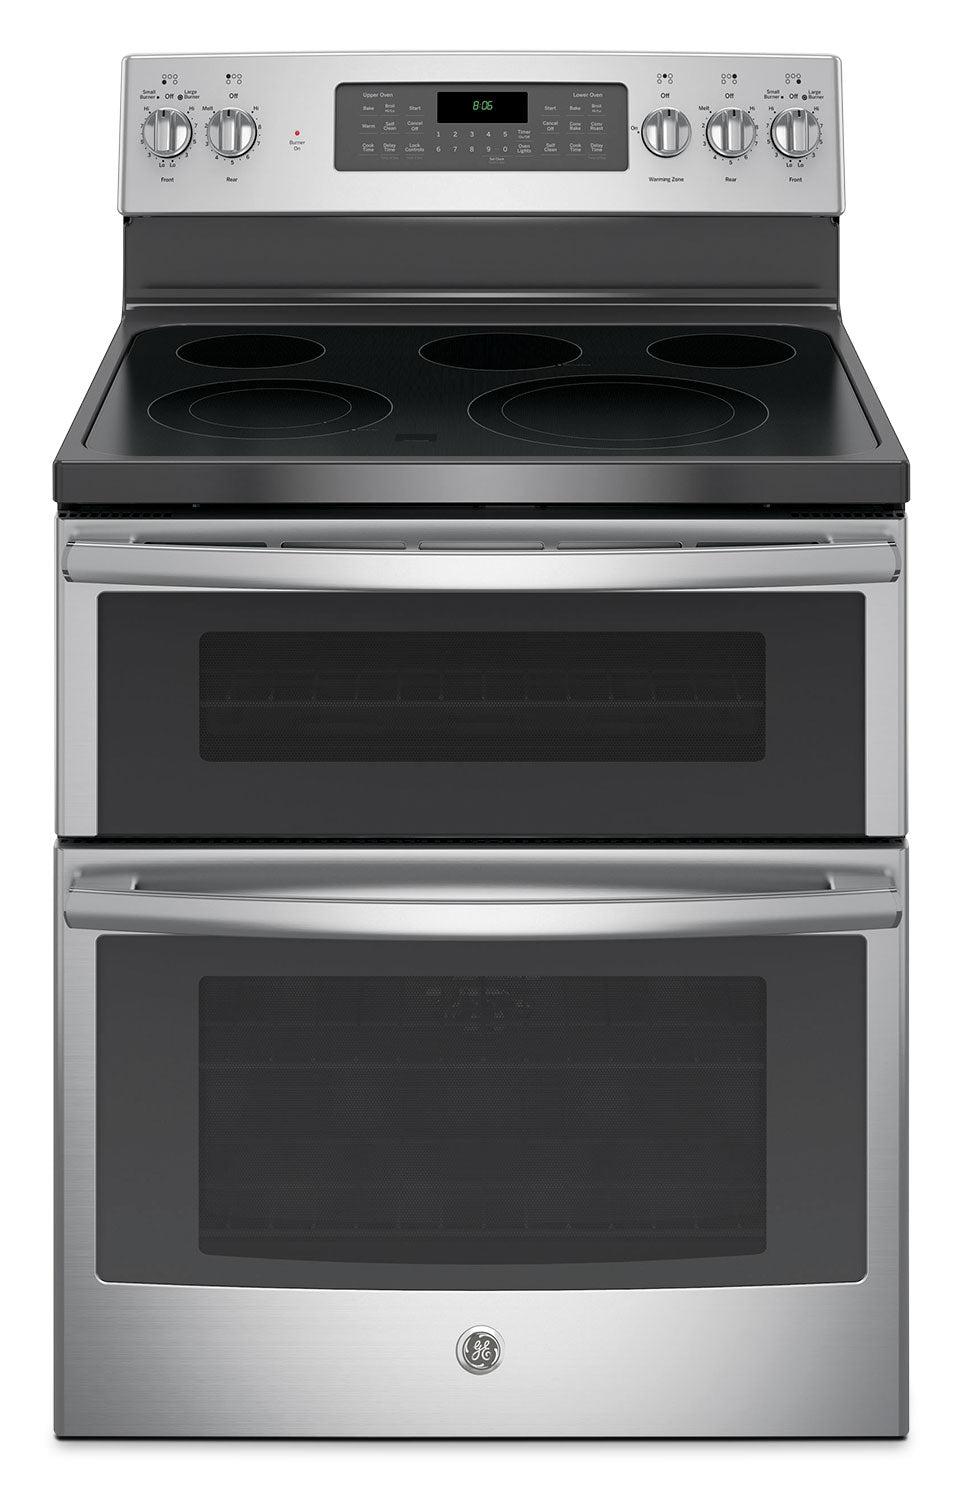 Ovensi Videos Porno ge 6.6 cu. ft. freestanding double oven electric range – jcb865sjss